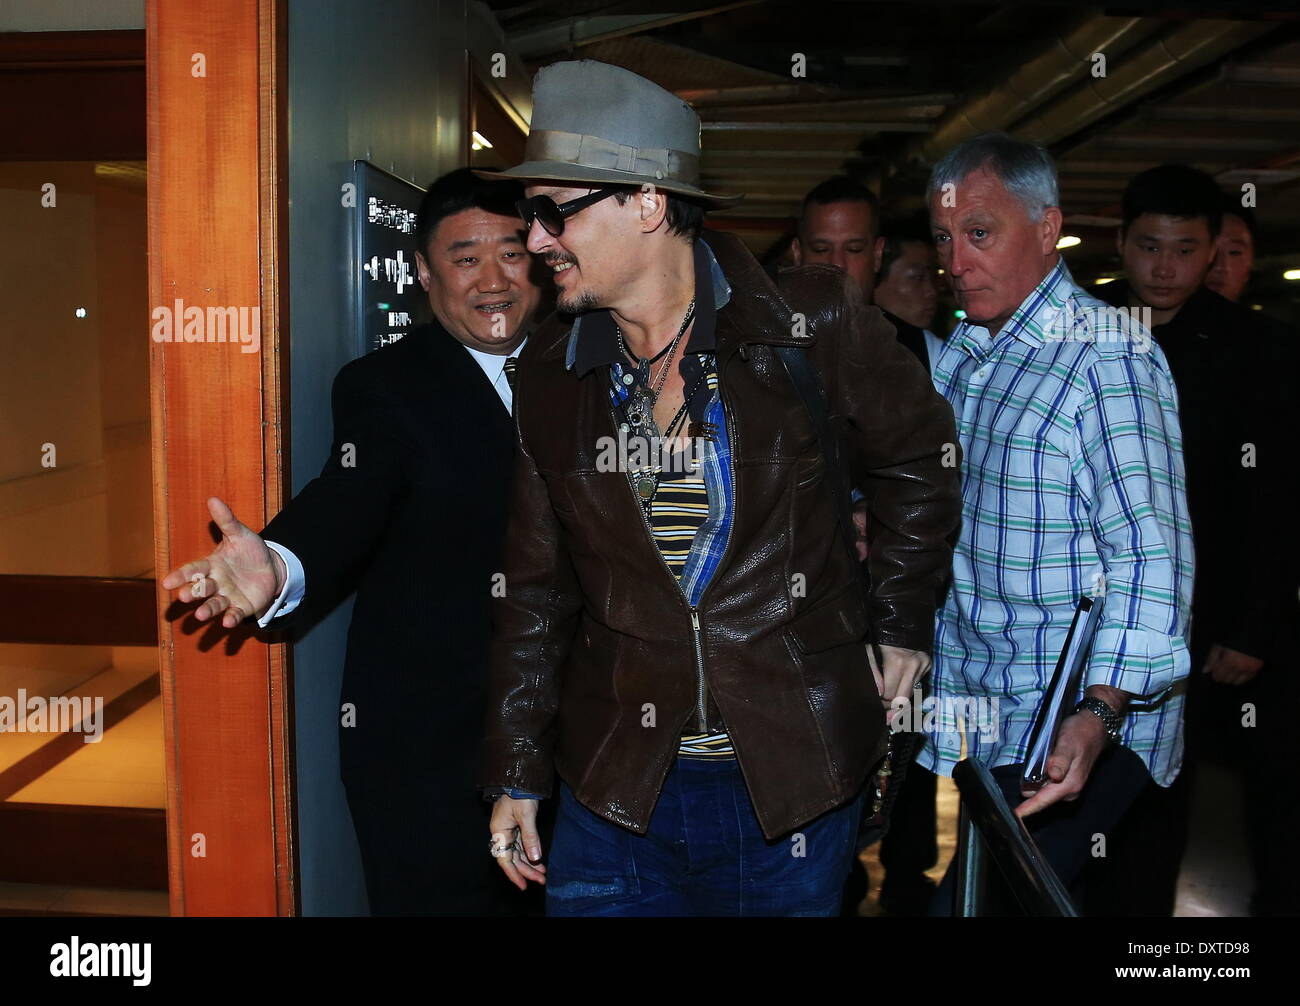 Beijing, China. 31st Mar, 2014. Johnny Depp (C) arrives at a hotel in China's Beijing for the promotion of upcoming film 'Transcendence,' March 30, 2014. Credit:  Xinhua/Alamy Live News - Stock Image